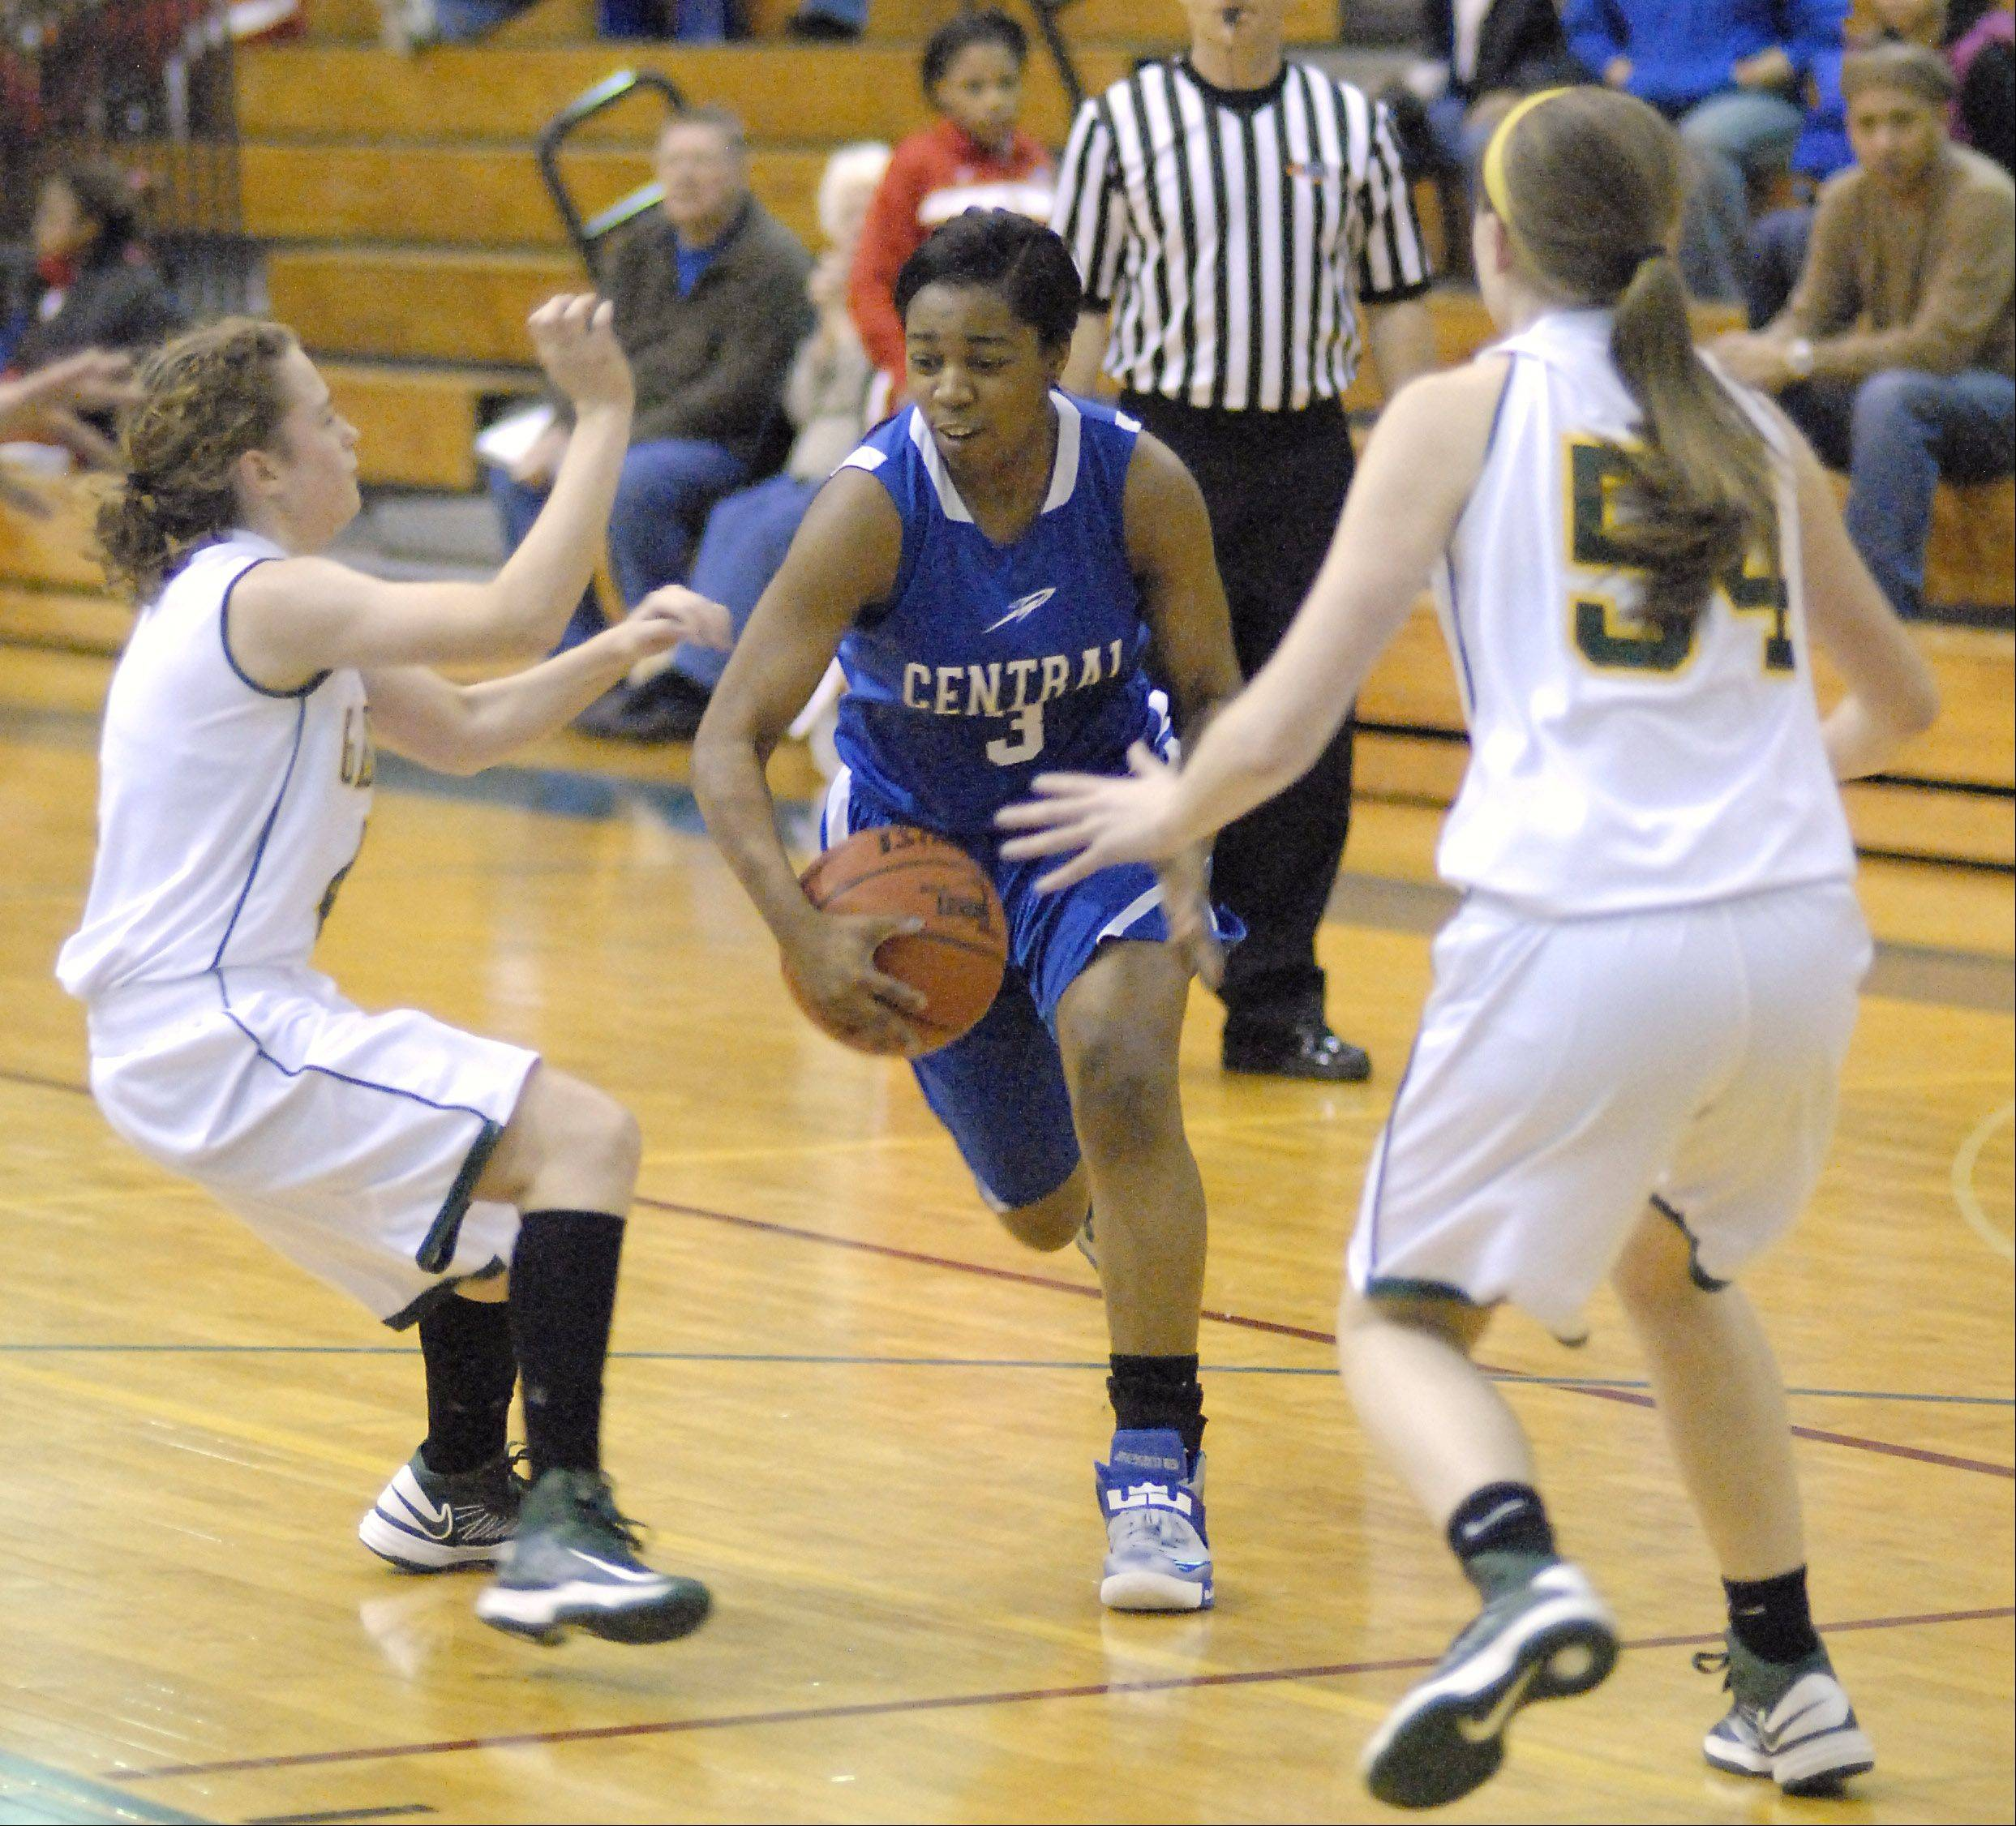 Images: Crystal Lake South vs. Burlington Central girls basketball